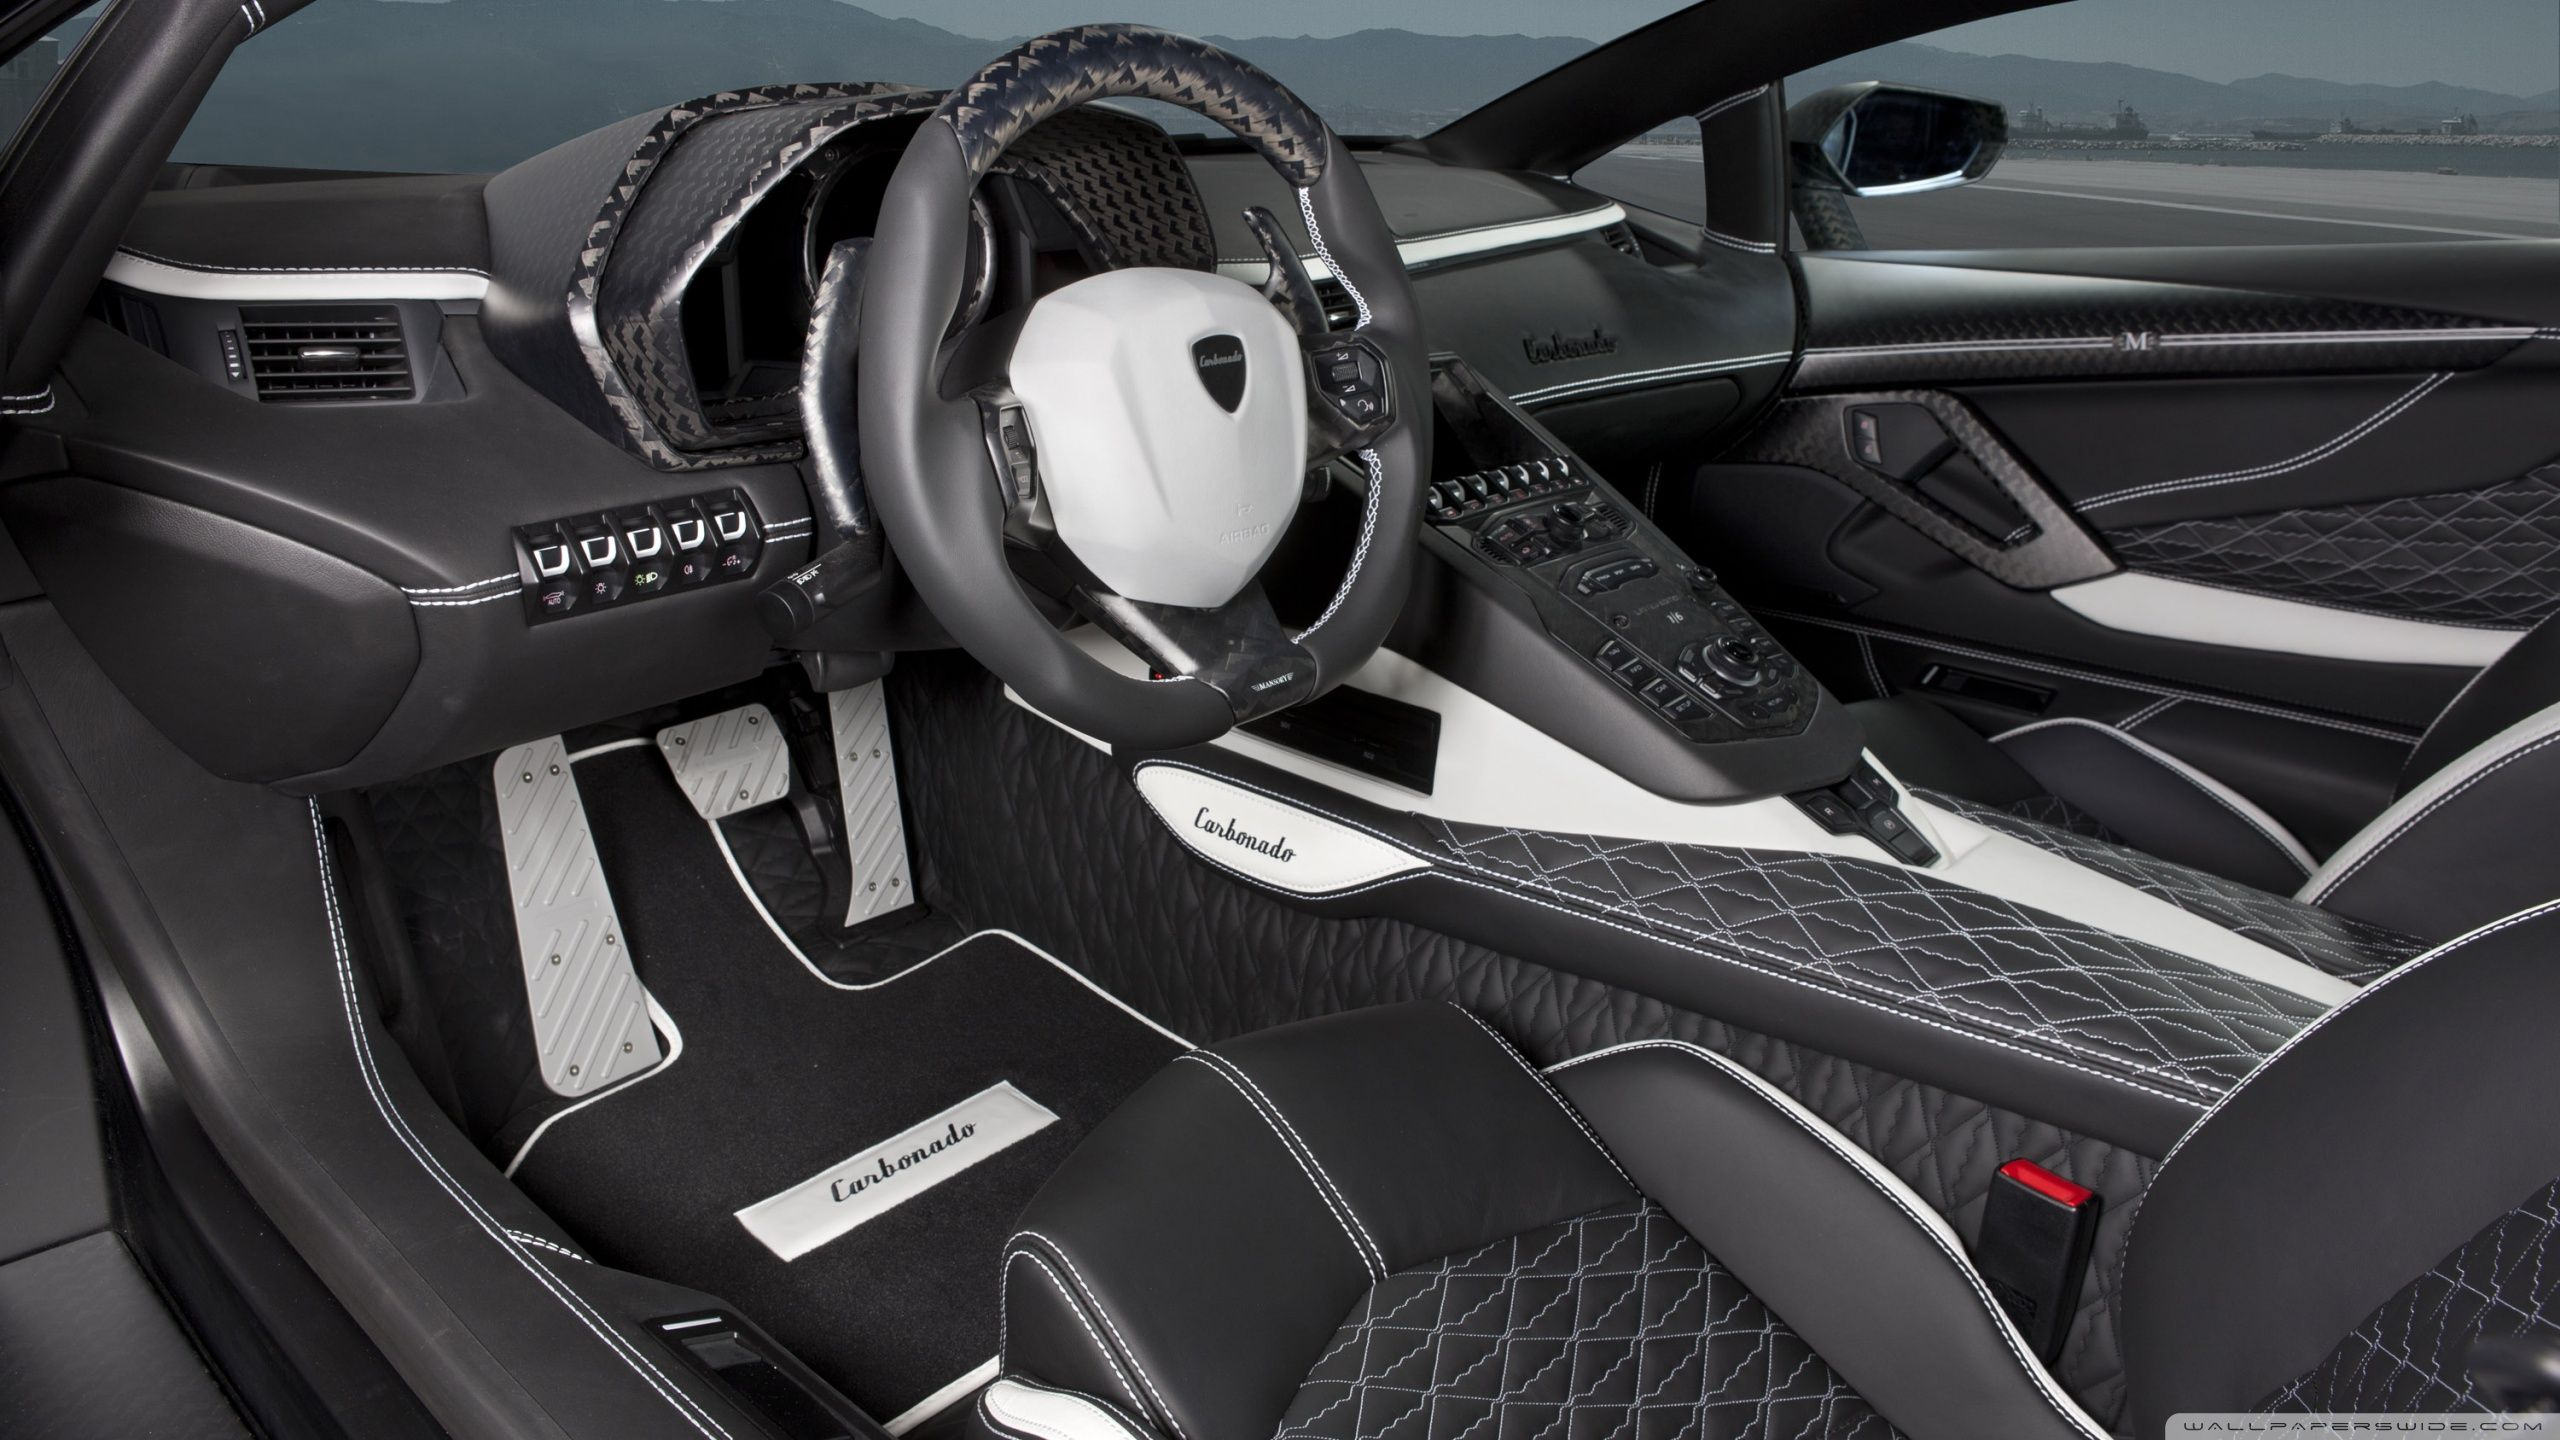 Lamborghini Aventador LP700 4 Car Interior HD desktop wallpaper ...